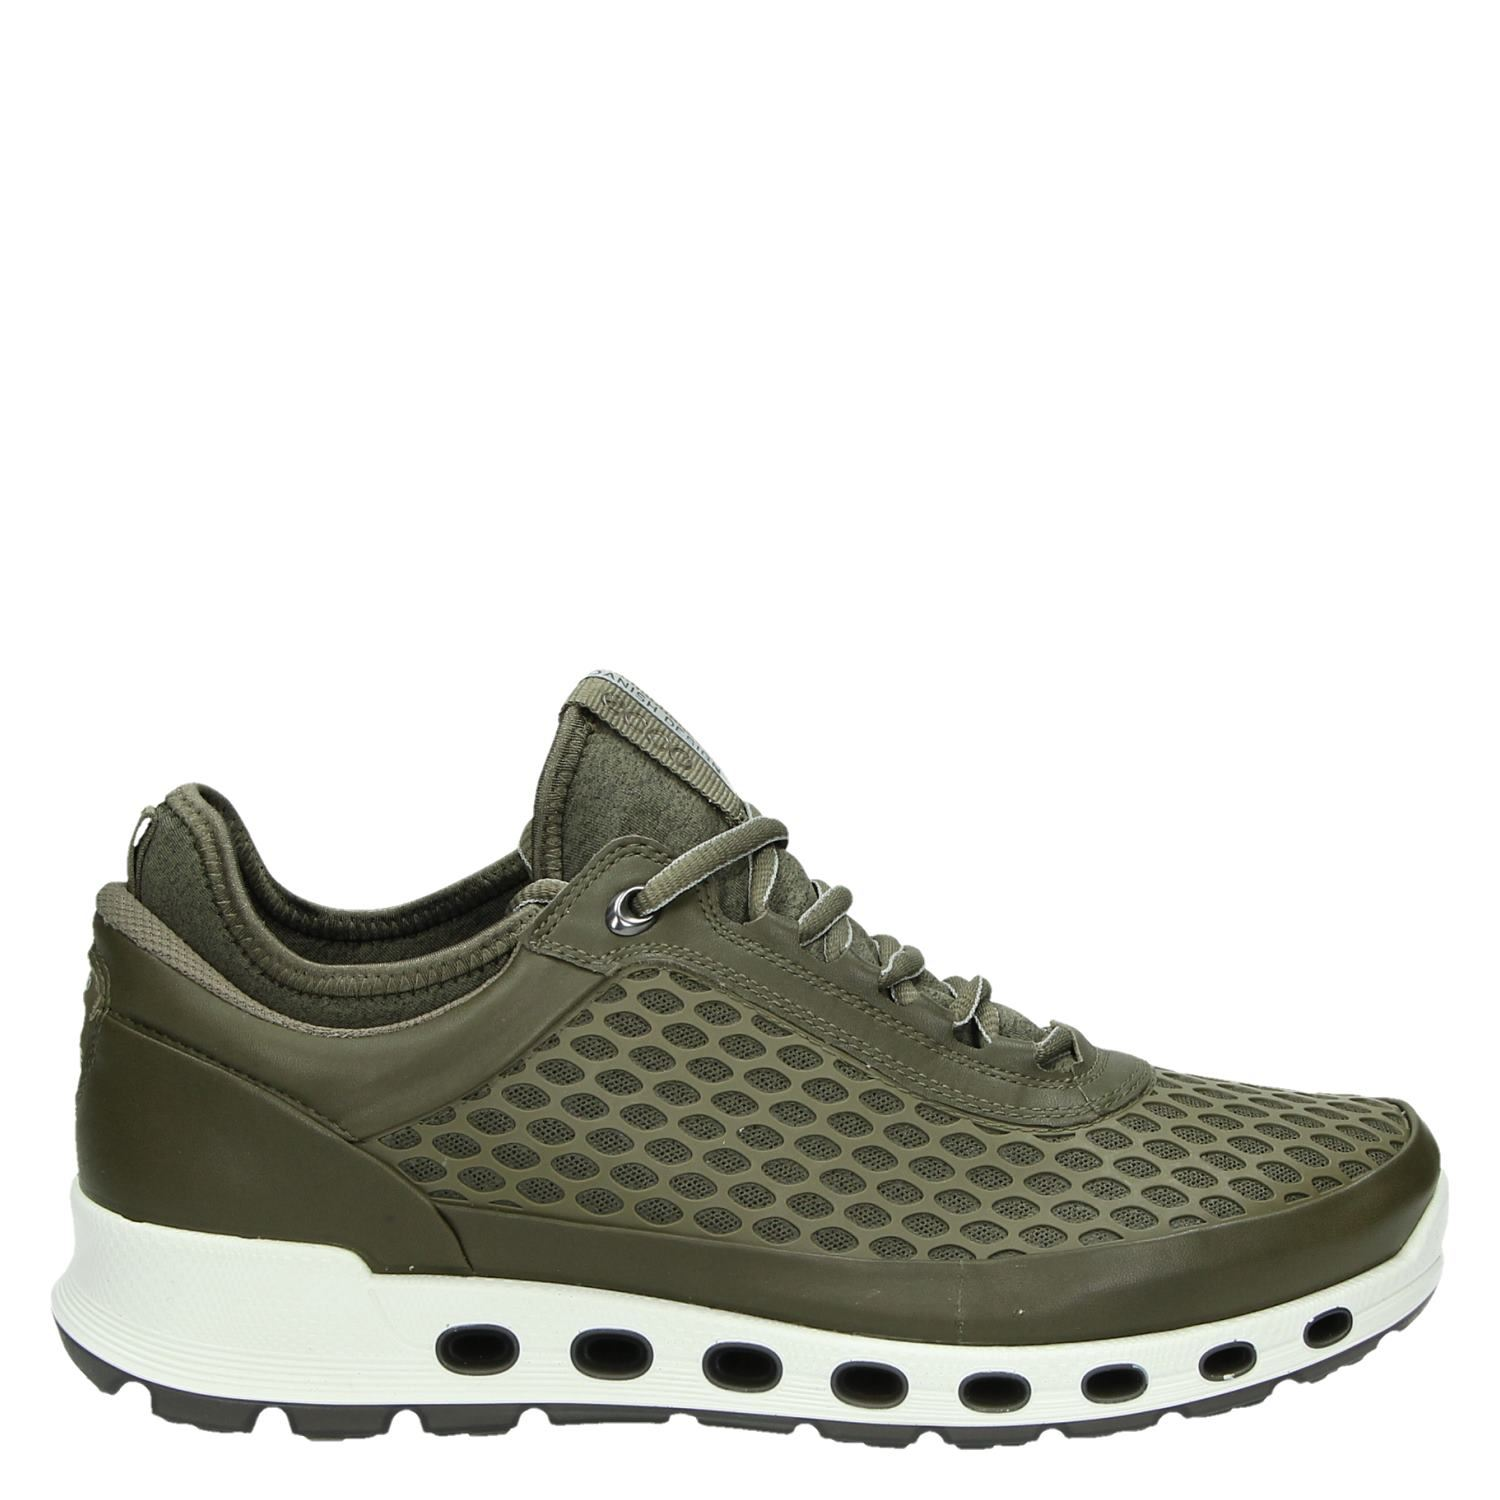 Chaussures Ecco Vert Pour Dames zNQy14vy